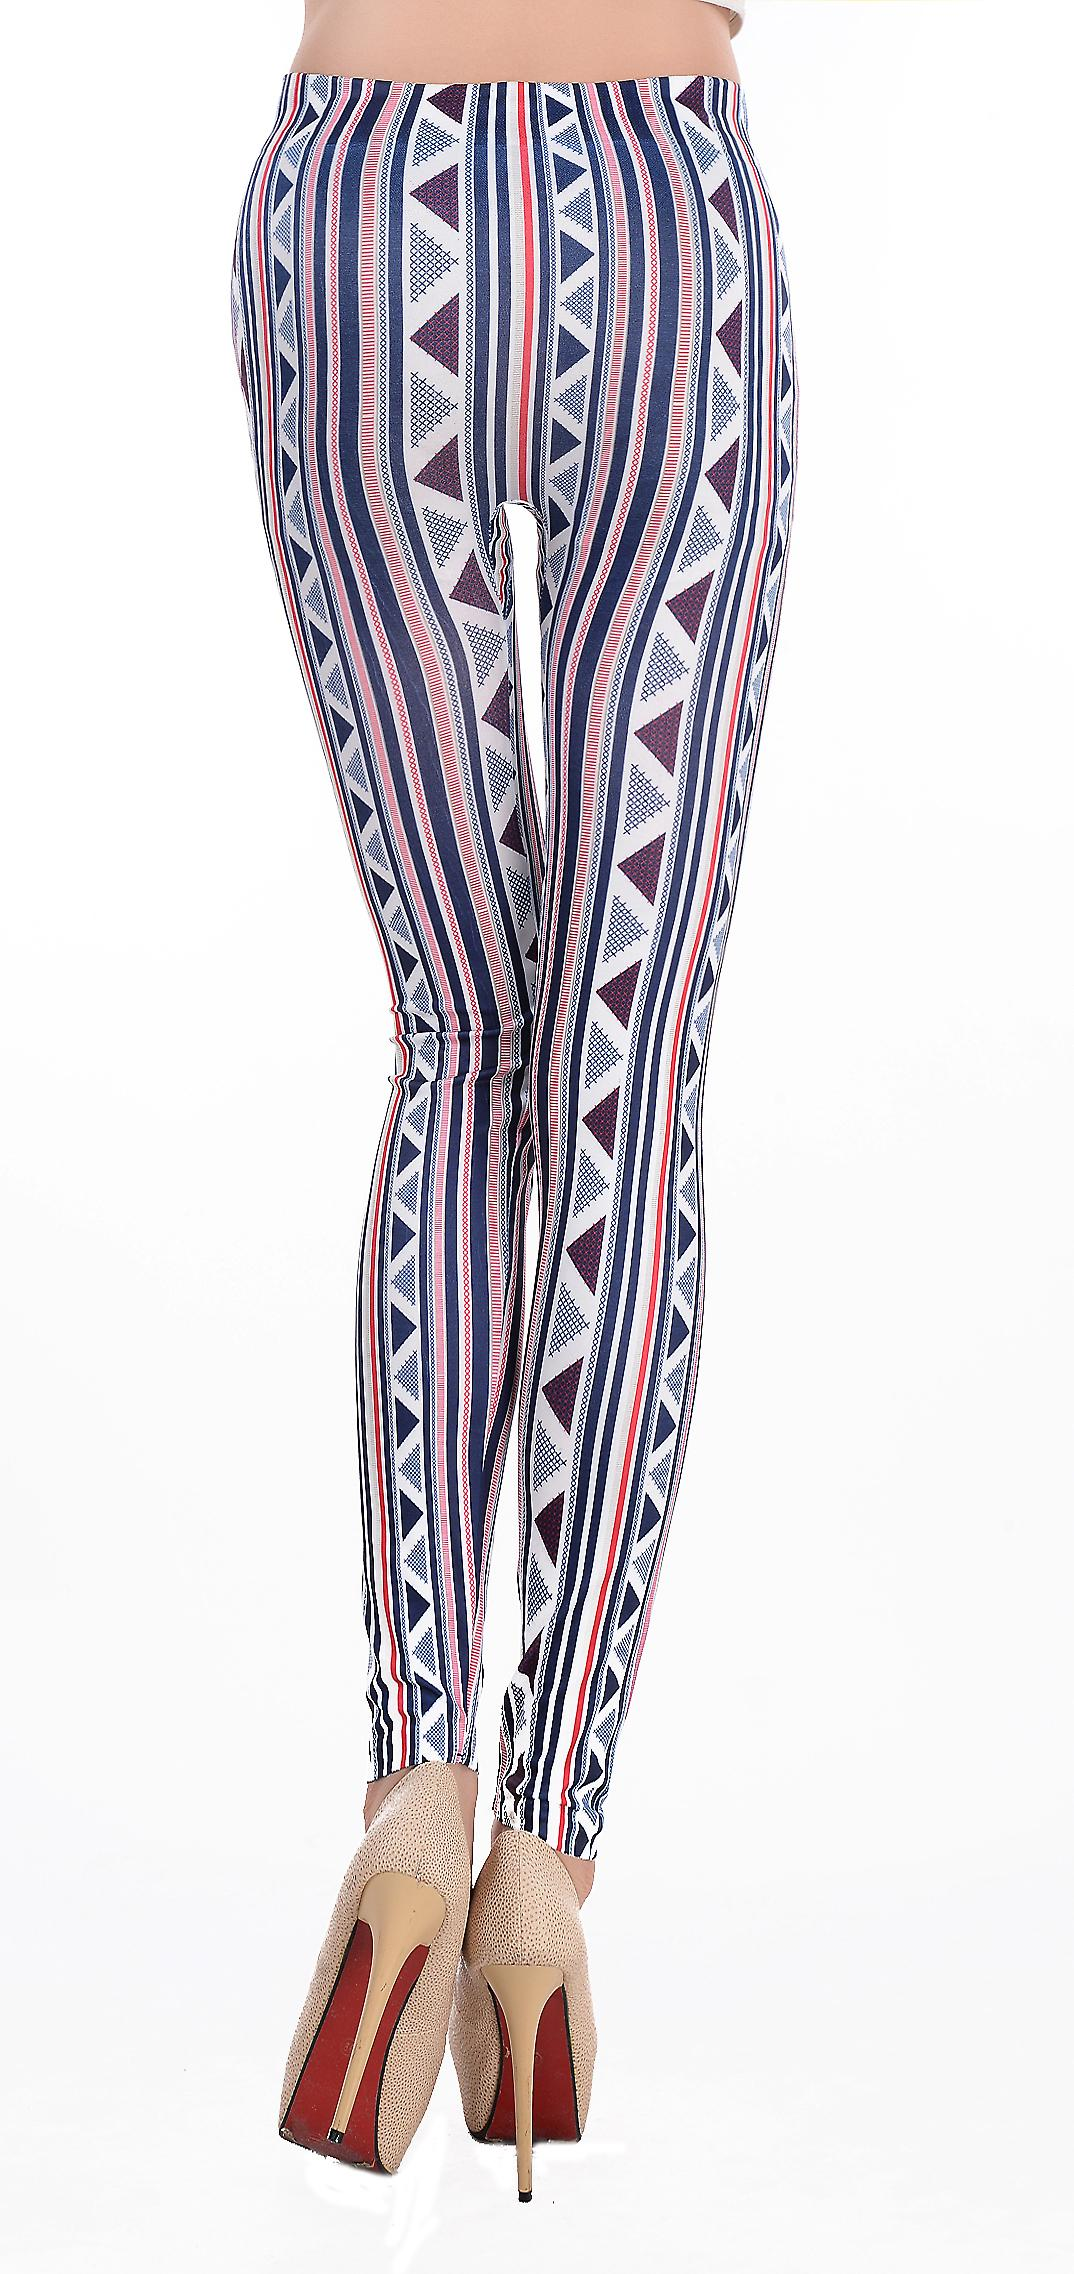 Waooh - Fashion - Legging pattern